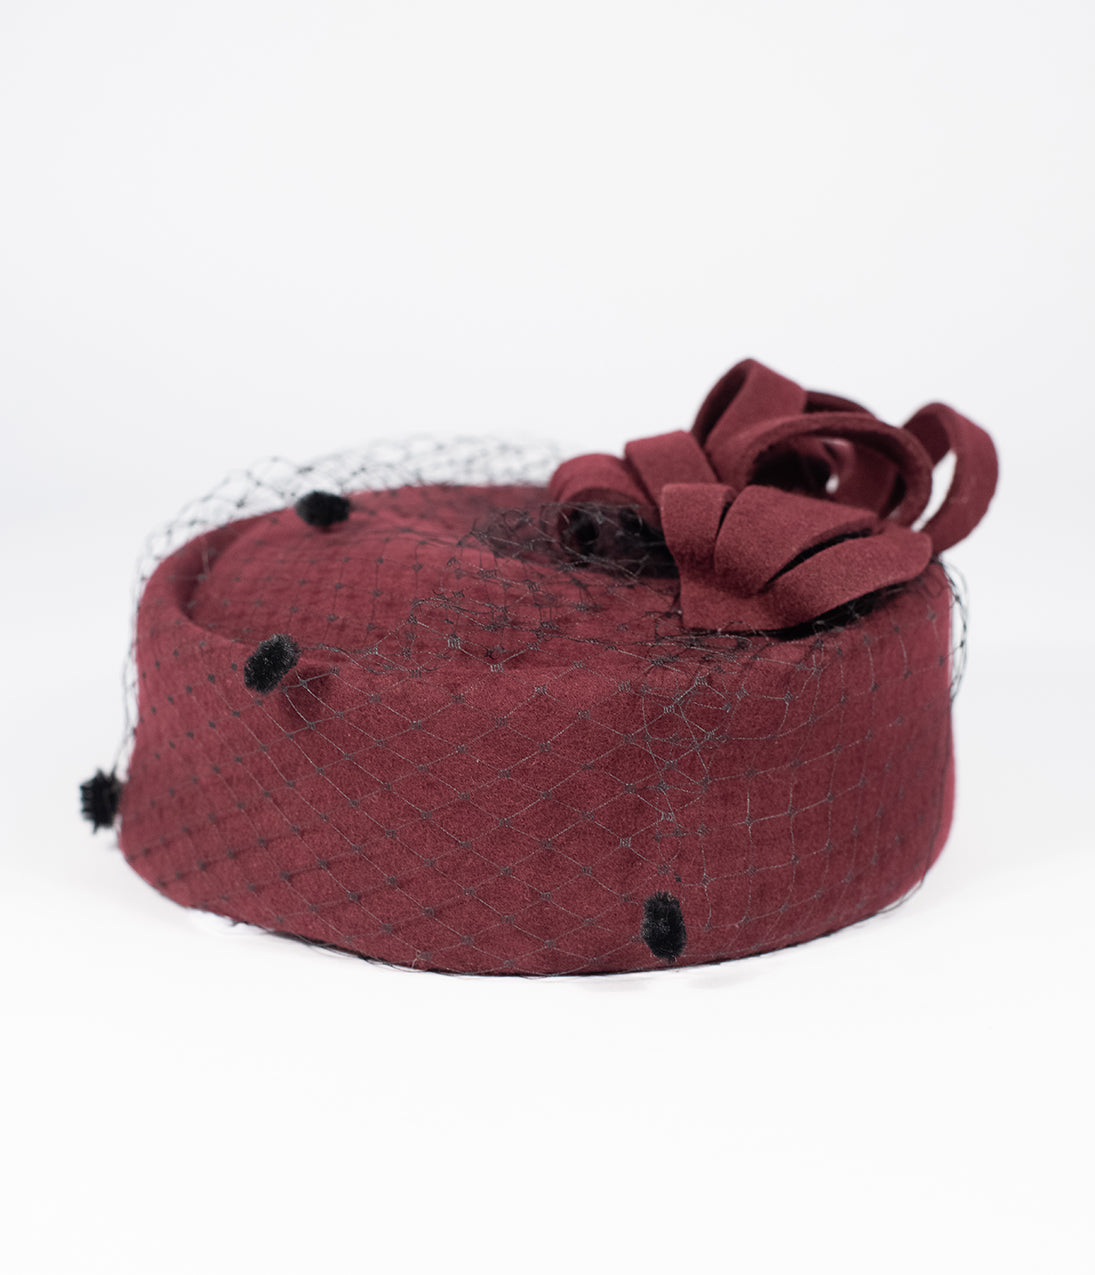 1950s Women's Hat Styles & History Unique Vintage Burgundy Red Wool Netted Pillbox Hat $32.00 AT vintagedancer.com